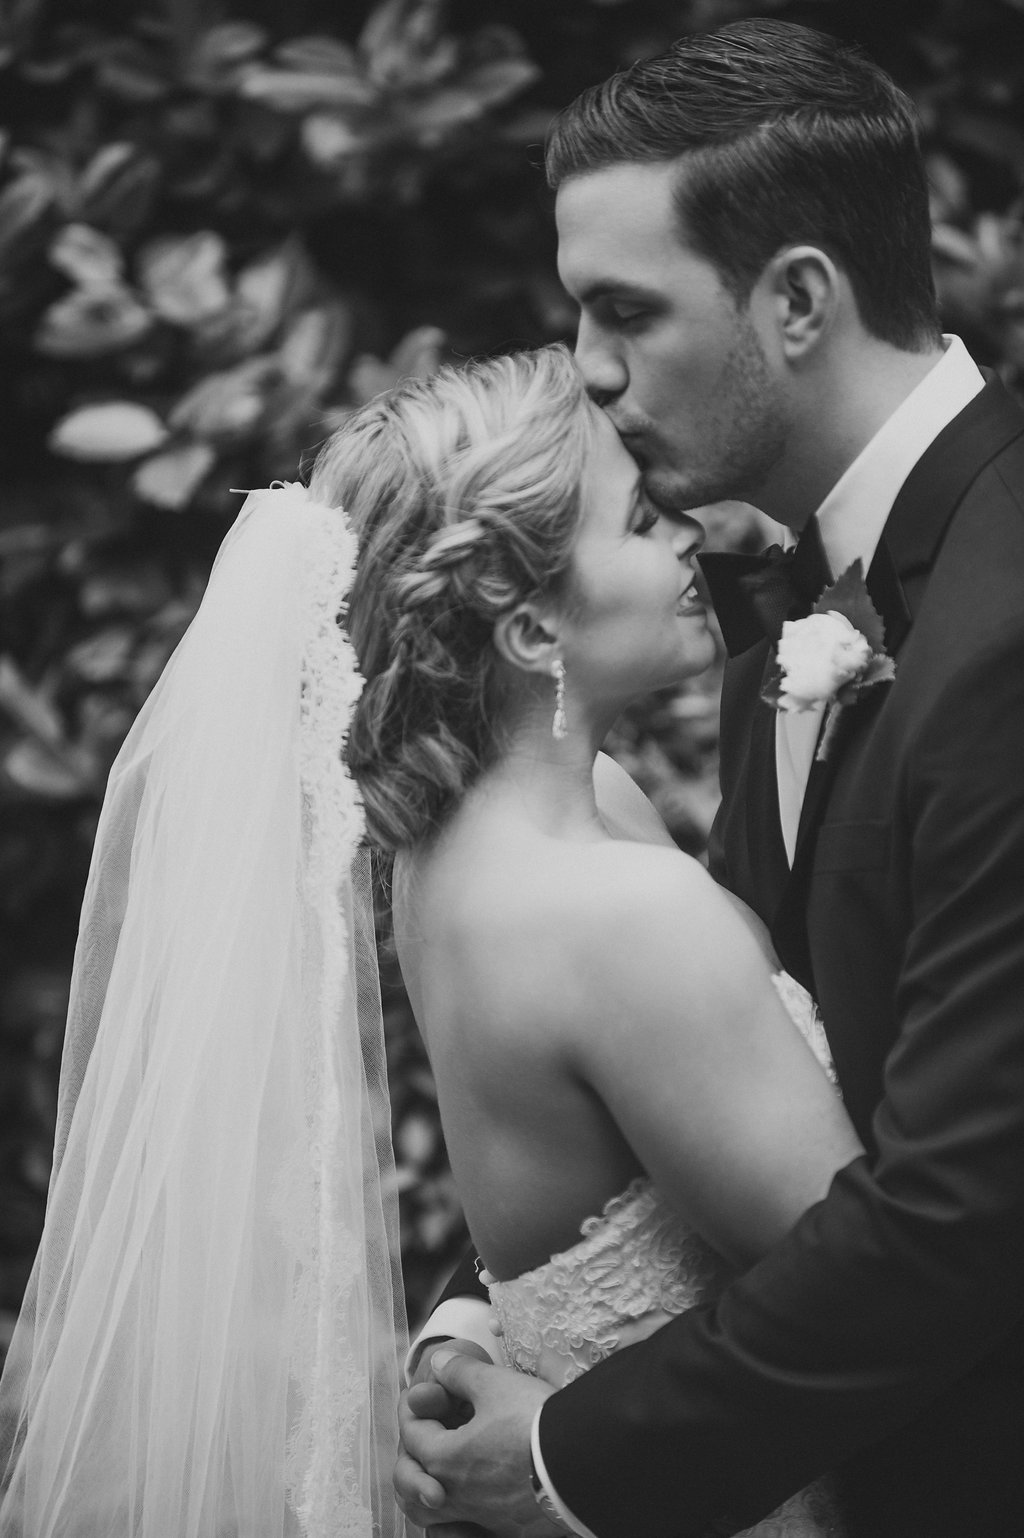 Smitten and Hooked captures a bride and groom embracing during their wedding at The Ritz Carlton in Uptown Charlotte